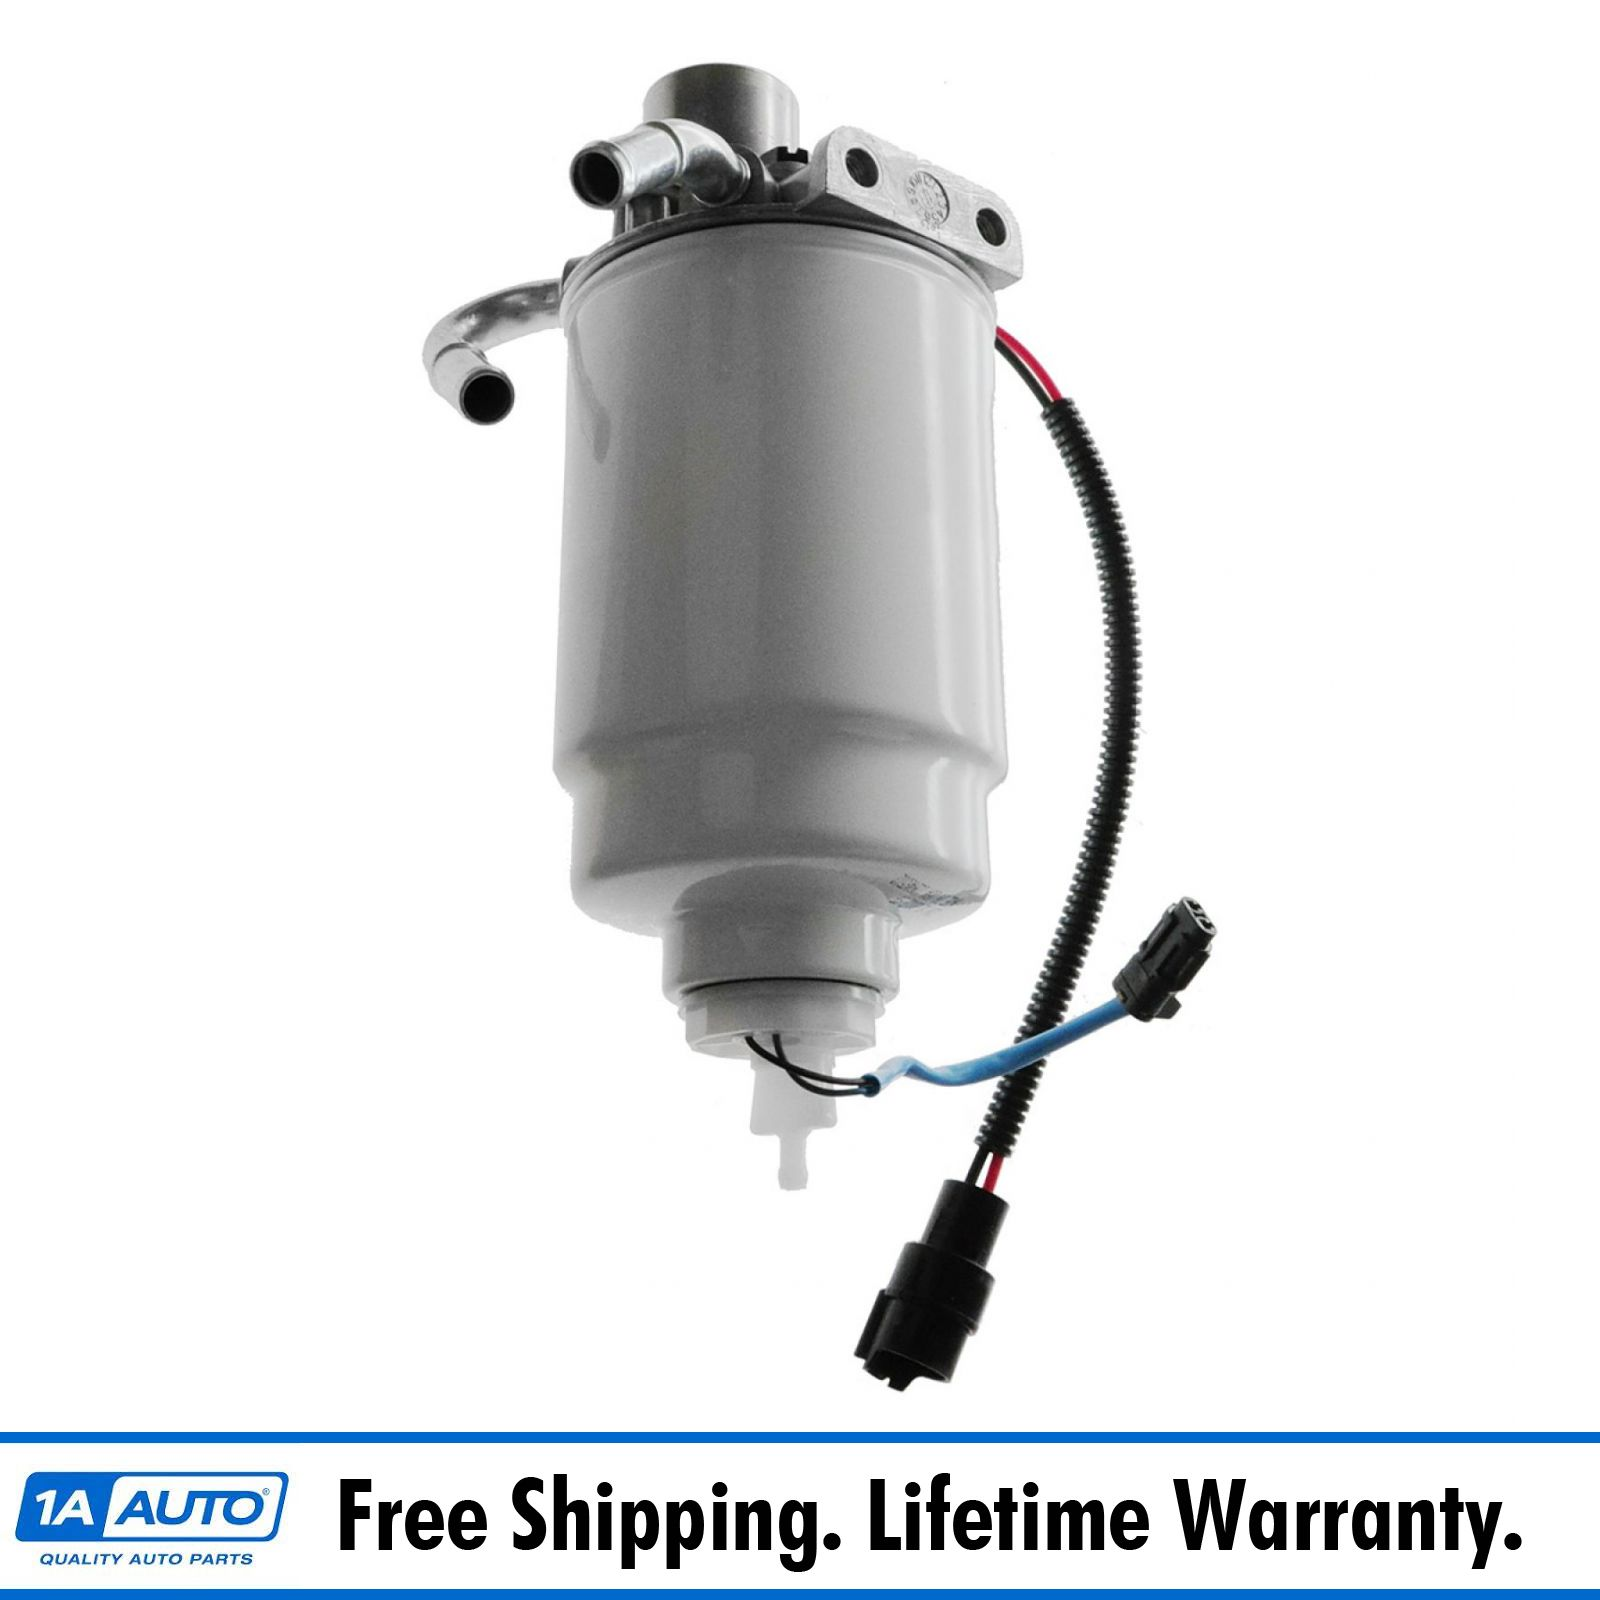 hight resolution of ac delco 12642623 diesel fuel filter housing for silverado sierra 2500 3500 6 6l